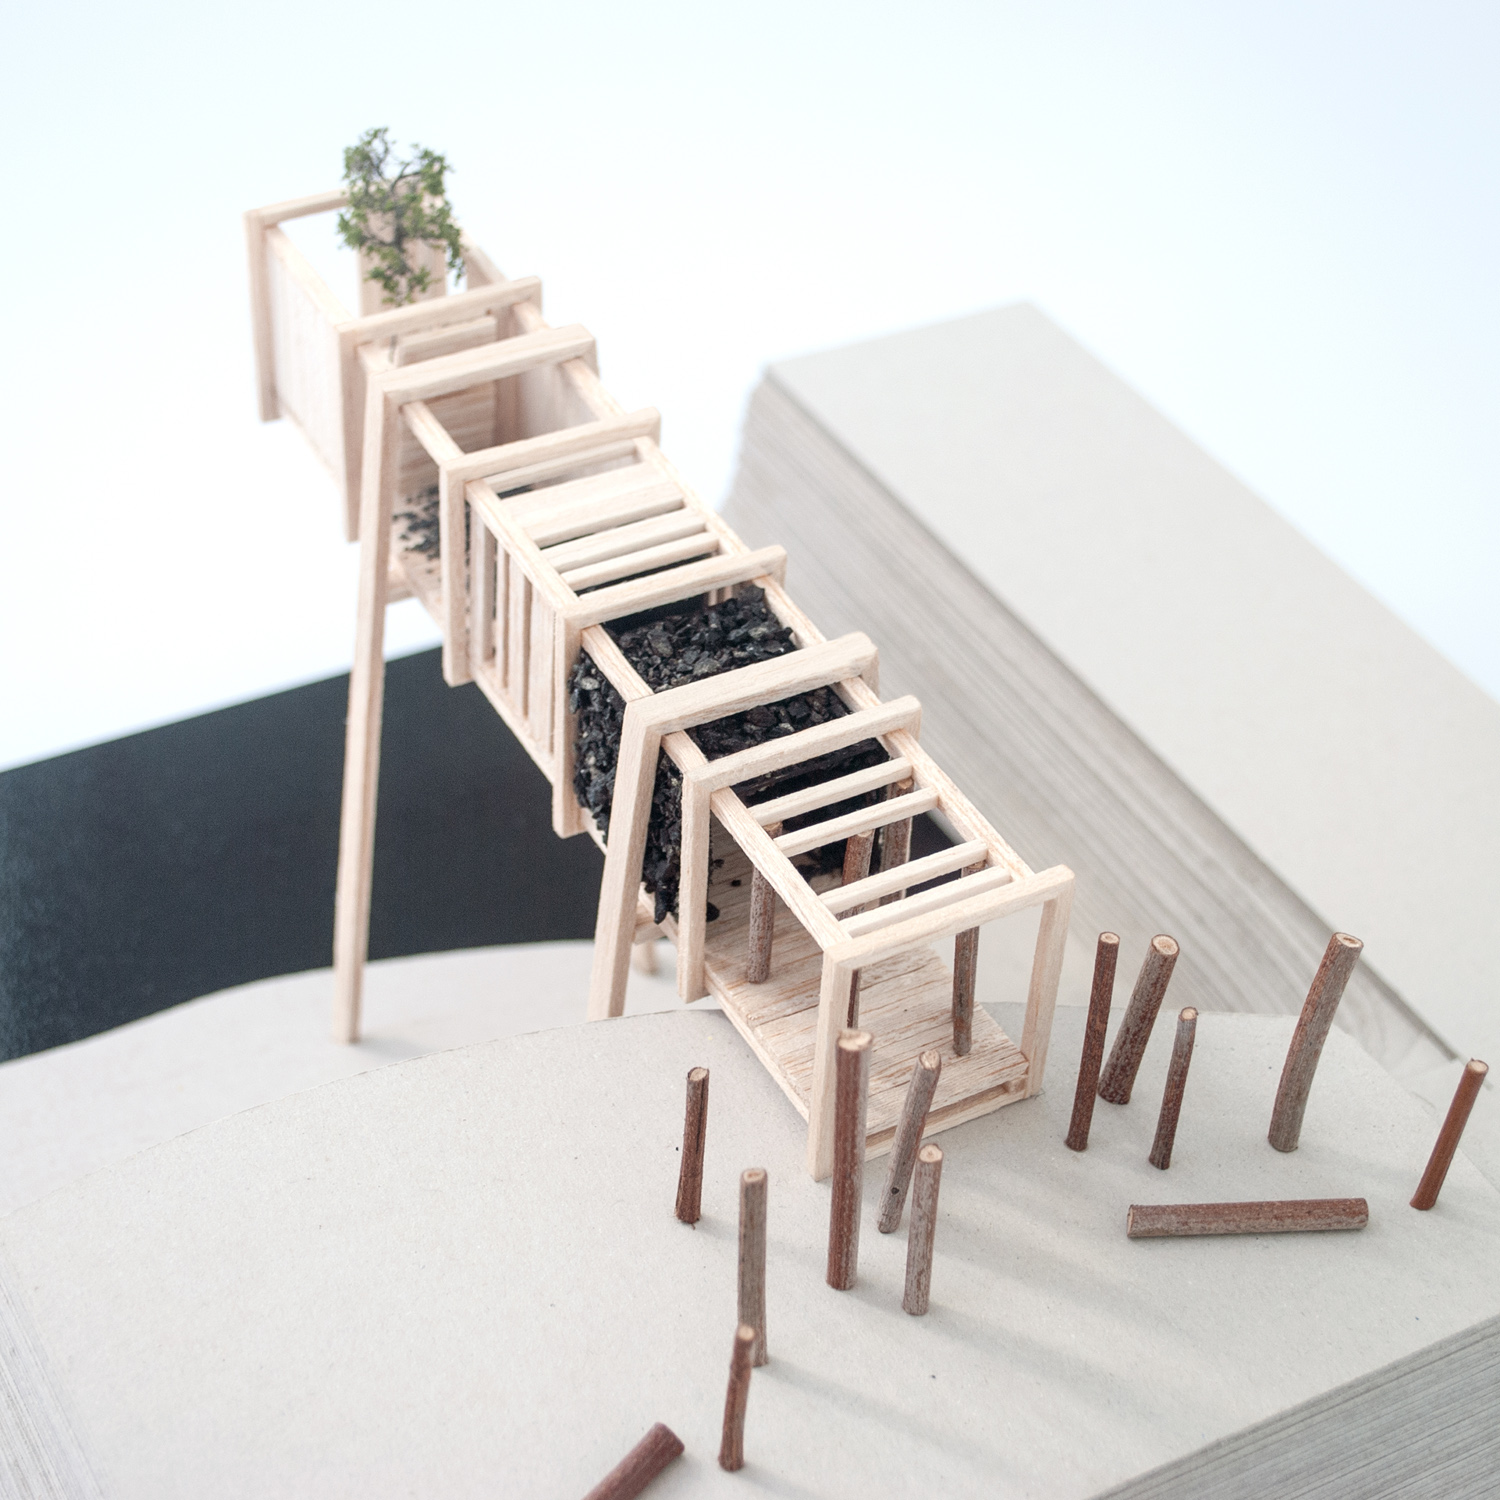 microcosme_con_form_architects_model 07.jpg